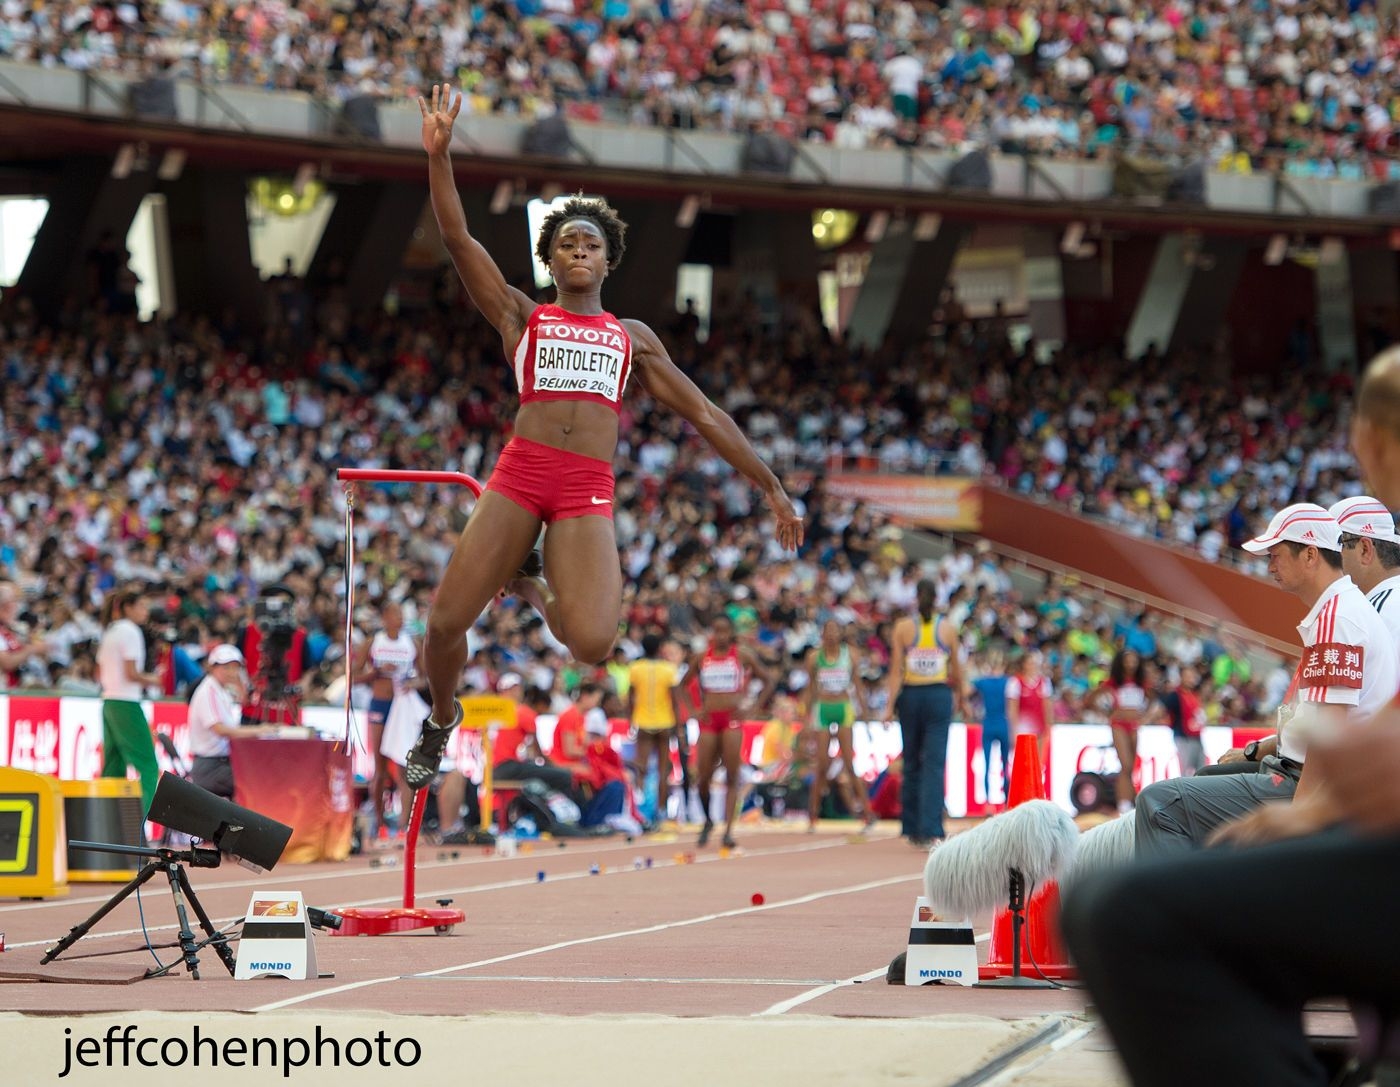 1beijing2015_day__6_bartoletta_ljw_q_jeff_cohen_photo_23054_web.jpg